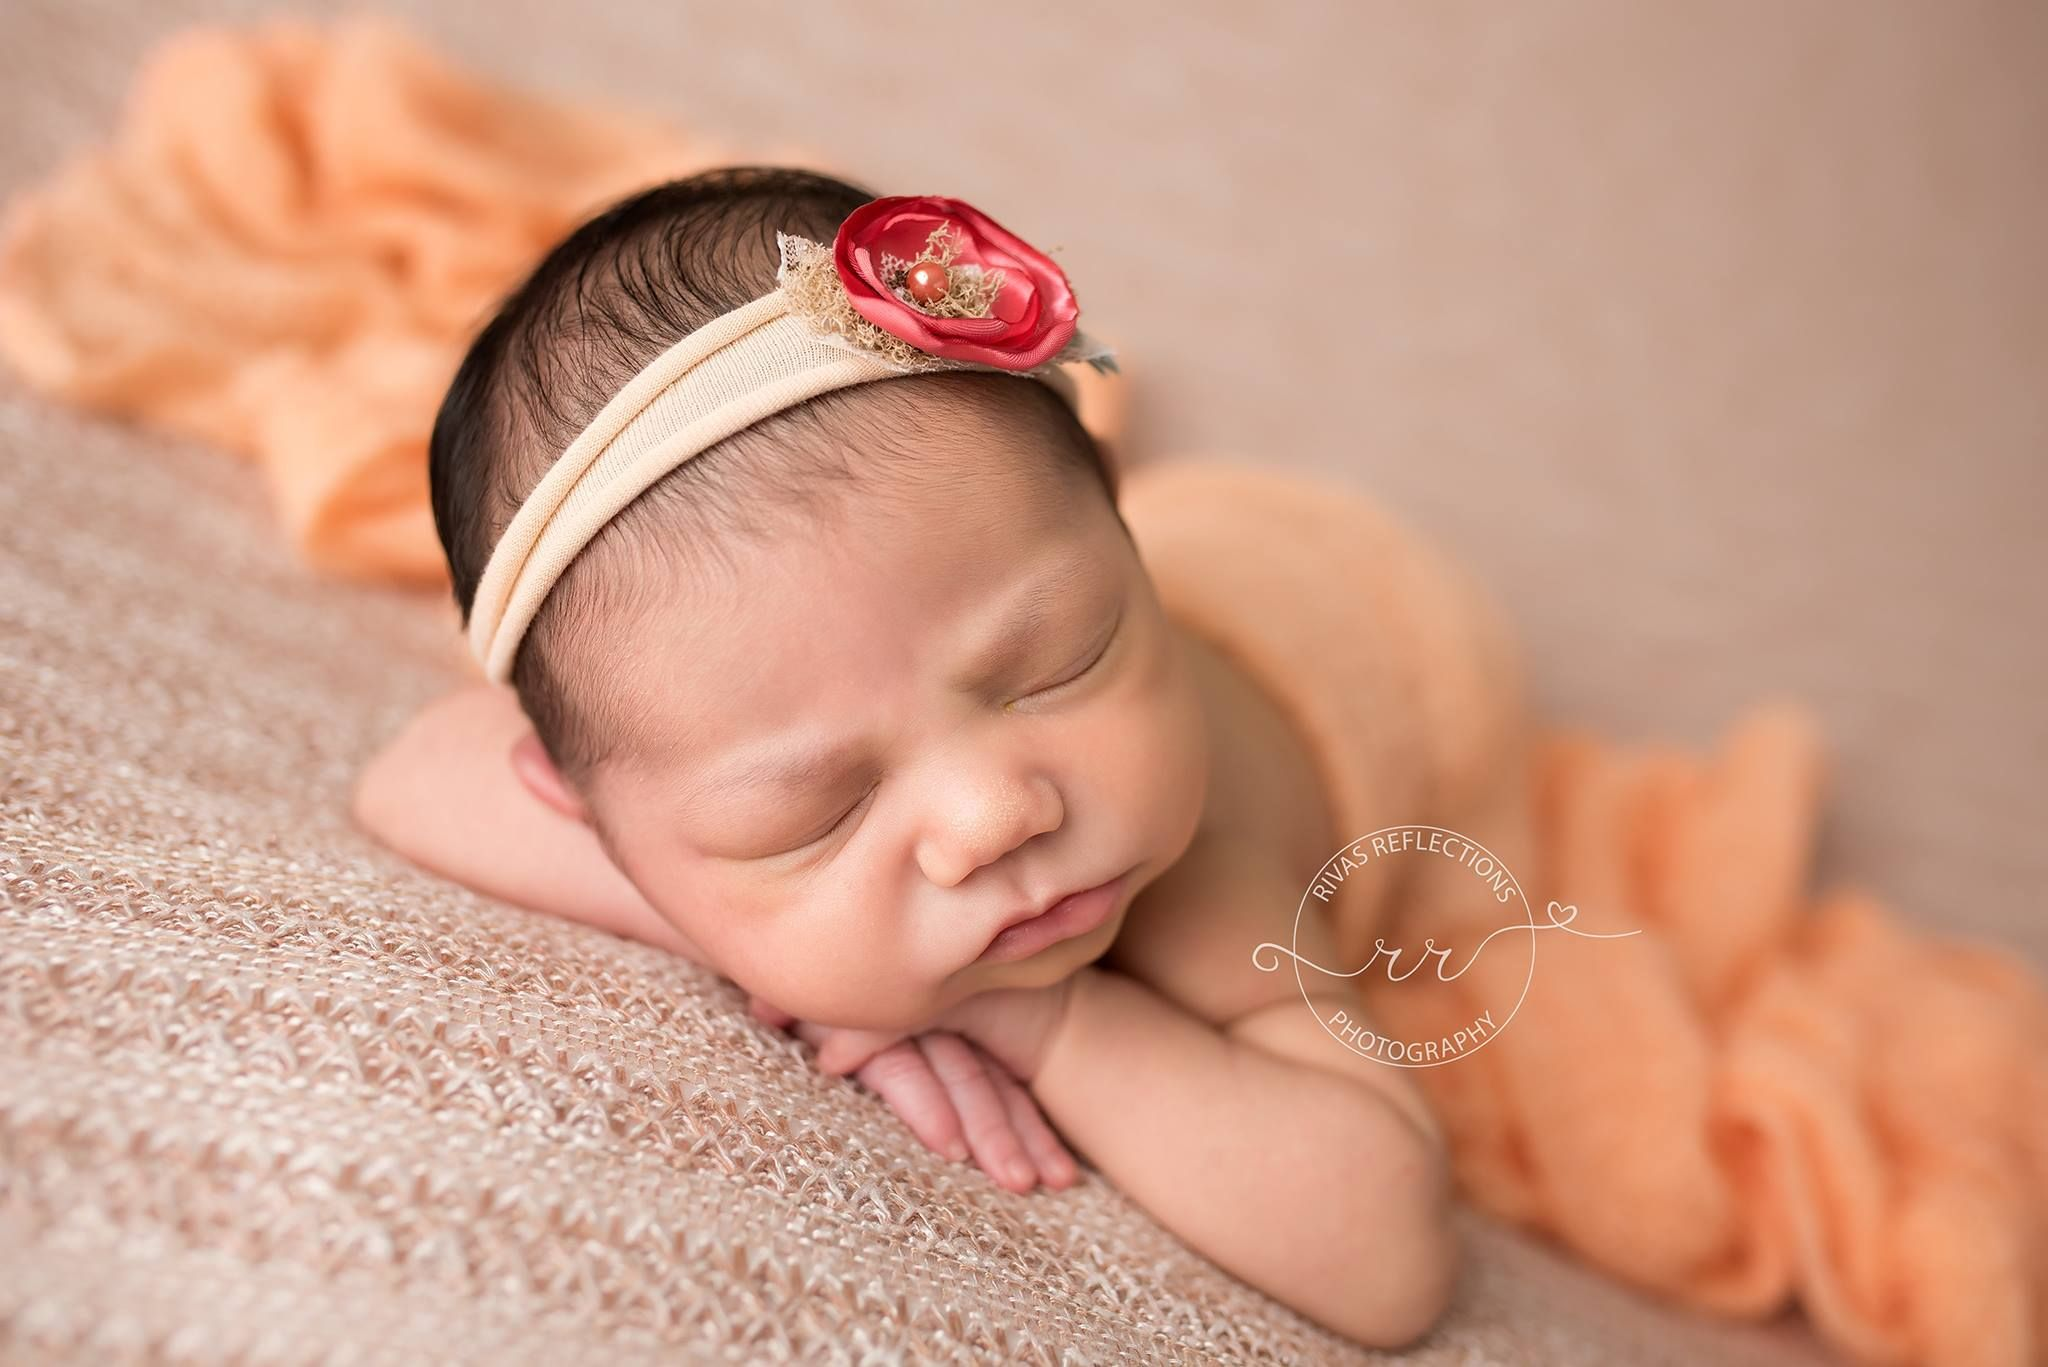 Newborn photo props newborn tieback newborn photography newborn photo prop shop jersey tieback newborn photographer baby headbands photography